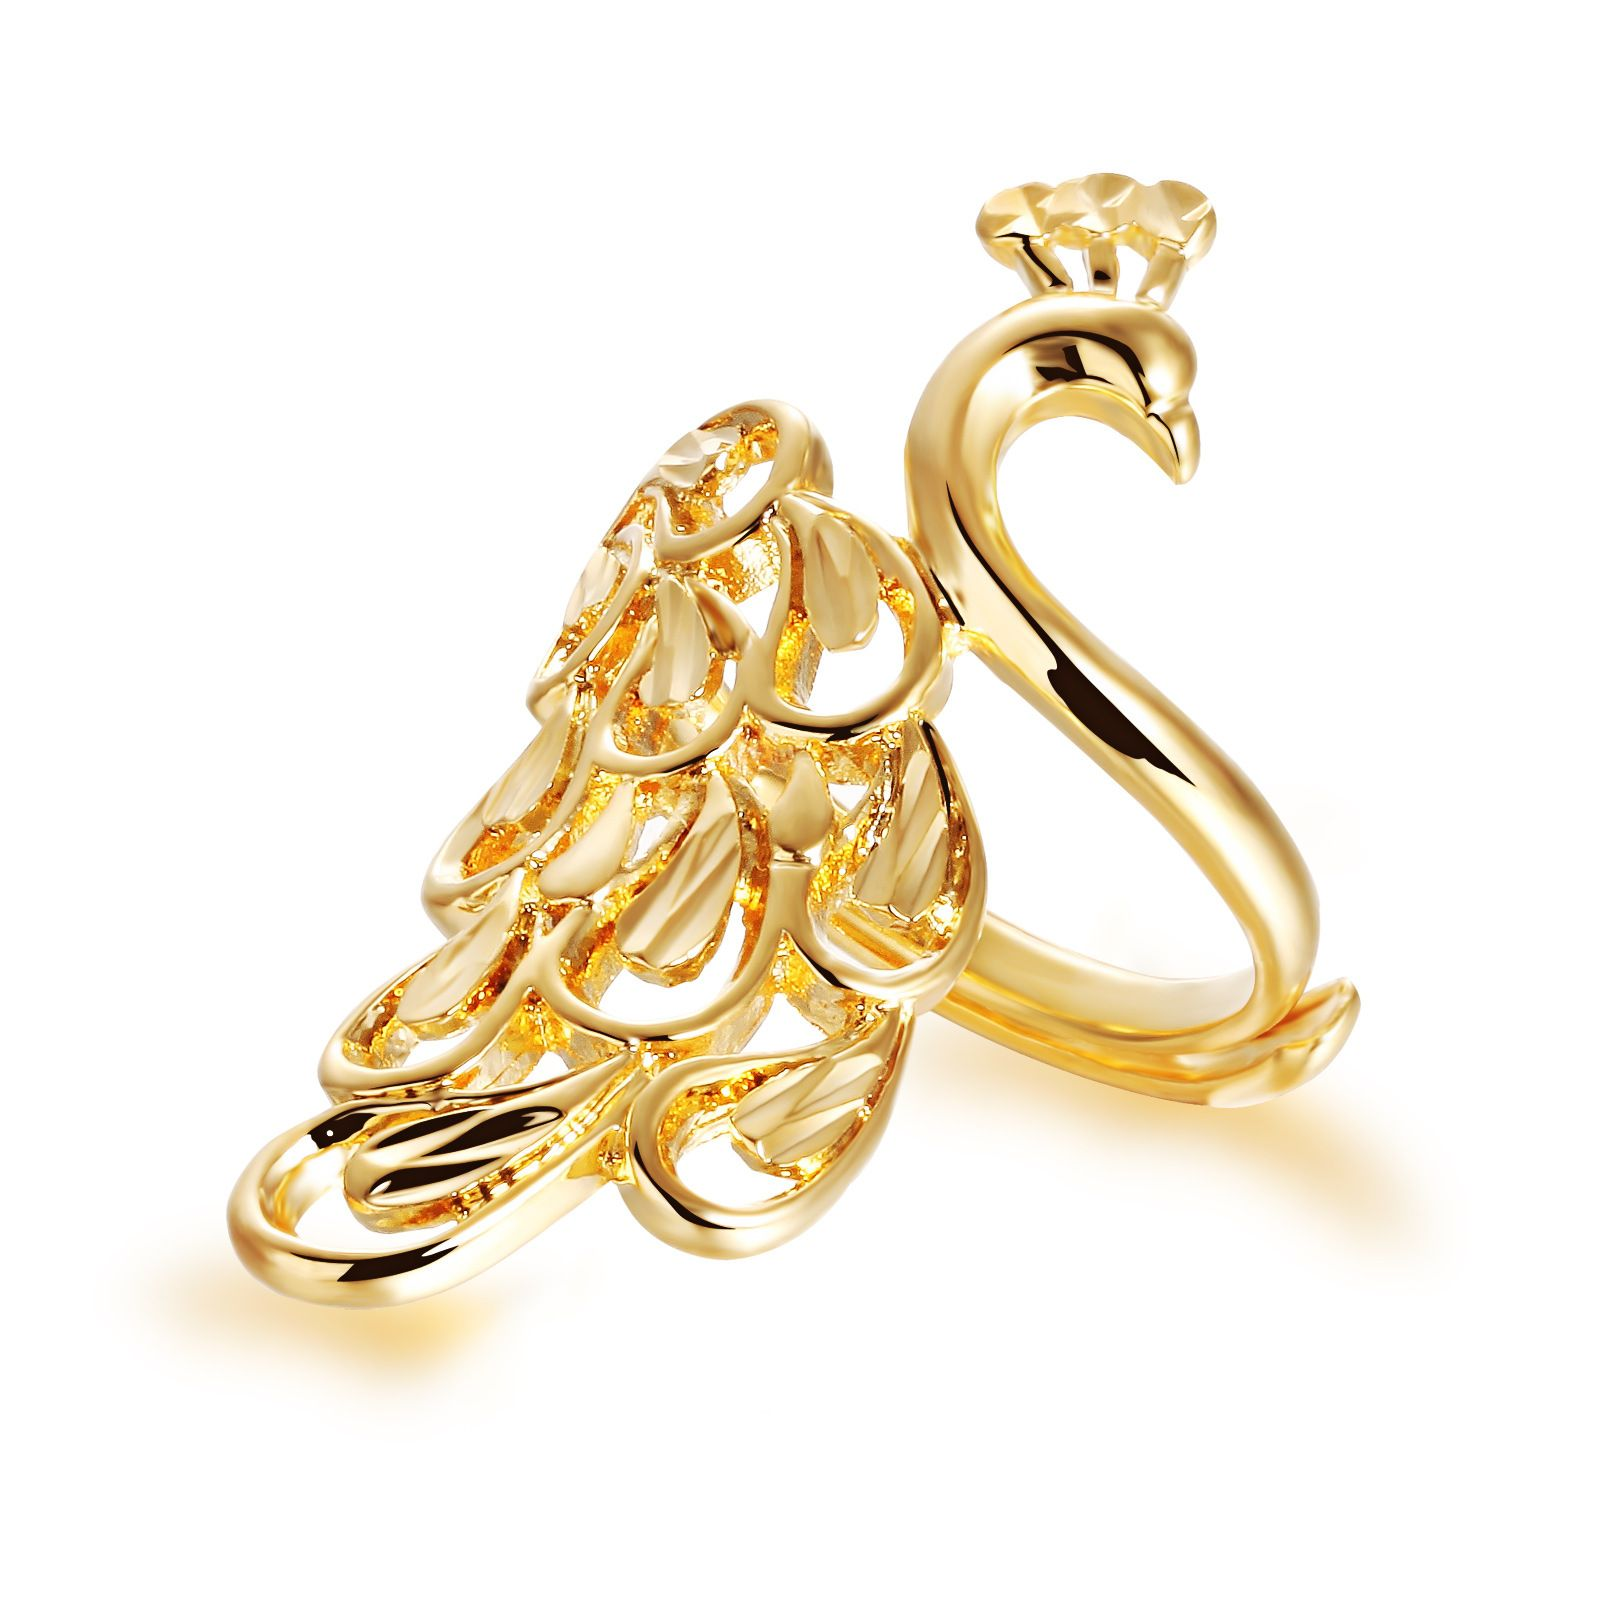 Peafowl Design Gold Plated Rings Womens Adjustable Luxury Wedding ...